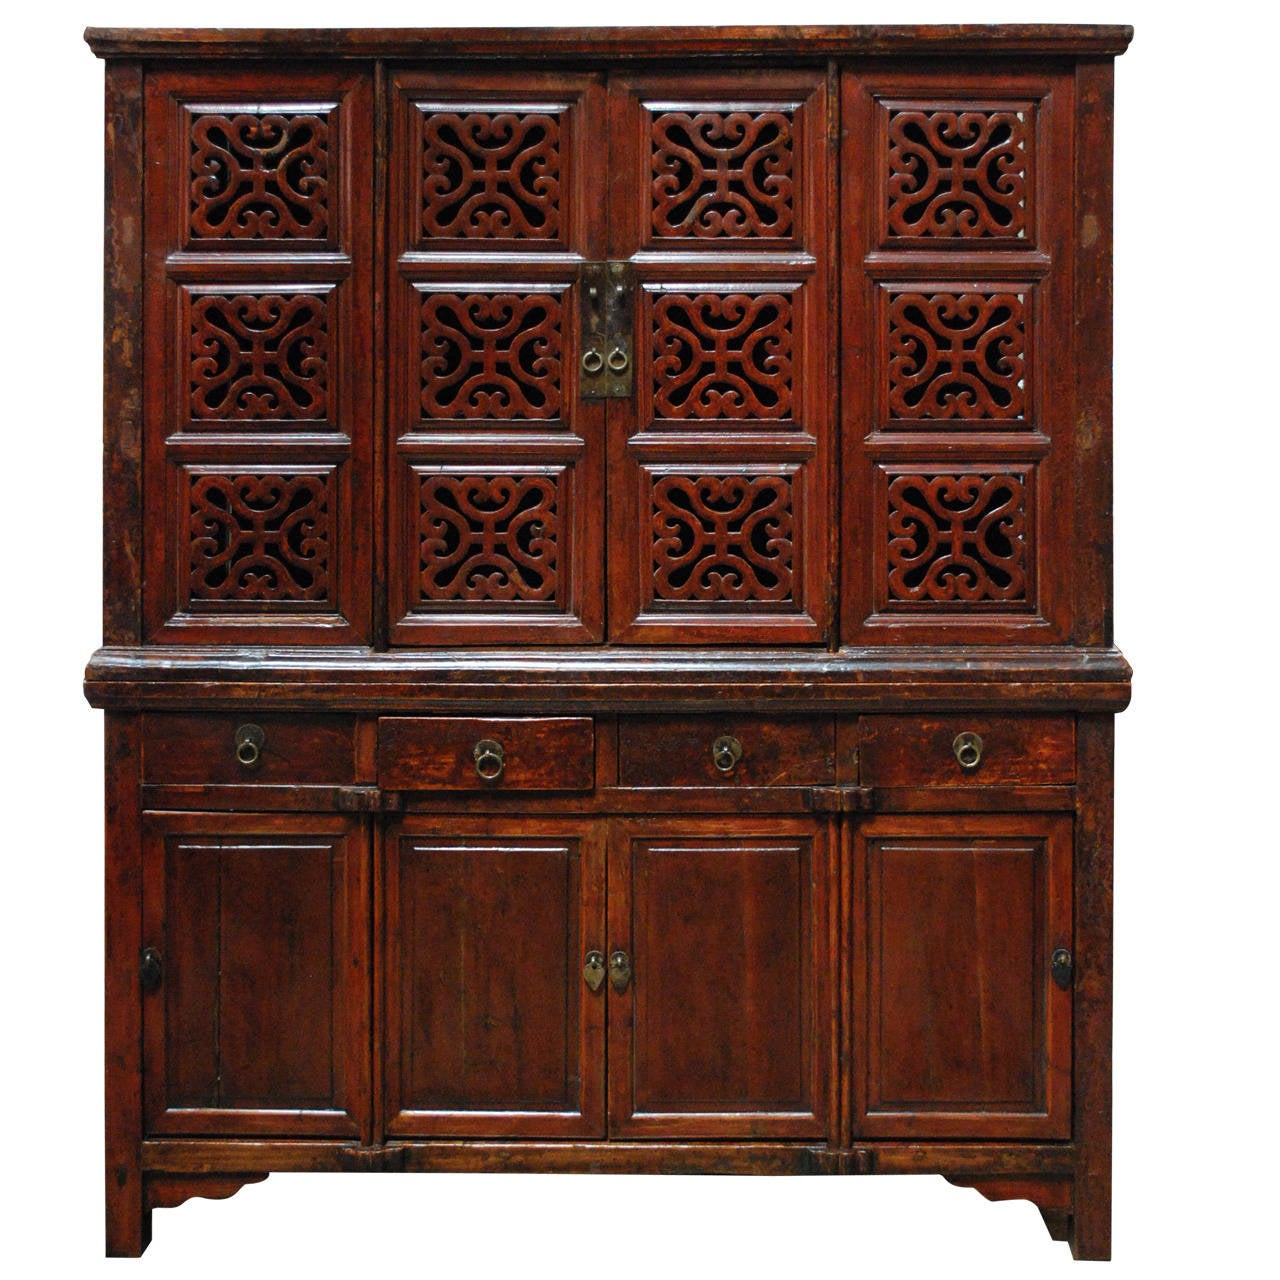 Number 1 Chinese Kitchen: Chinese Kitchen Cabinet At 1stdibs